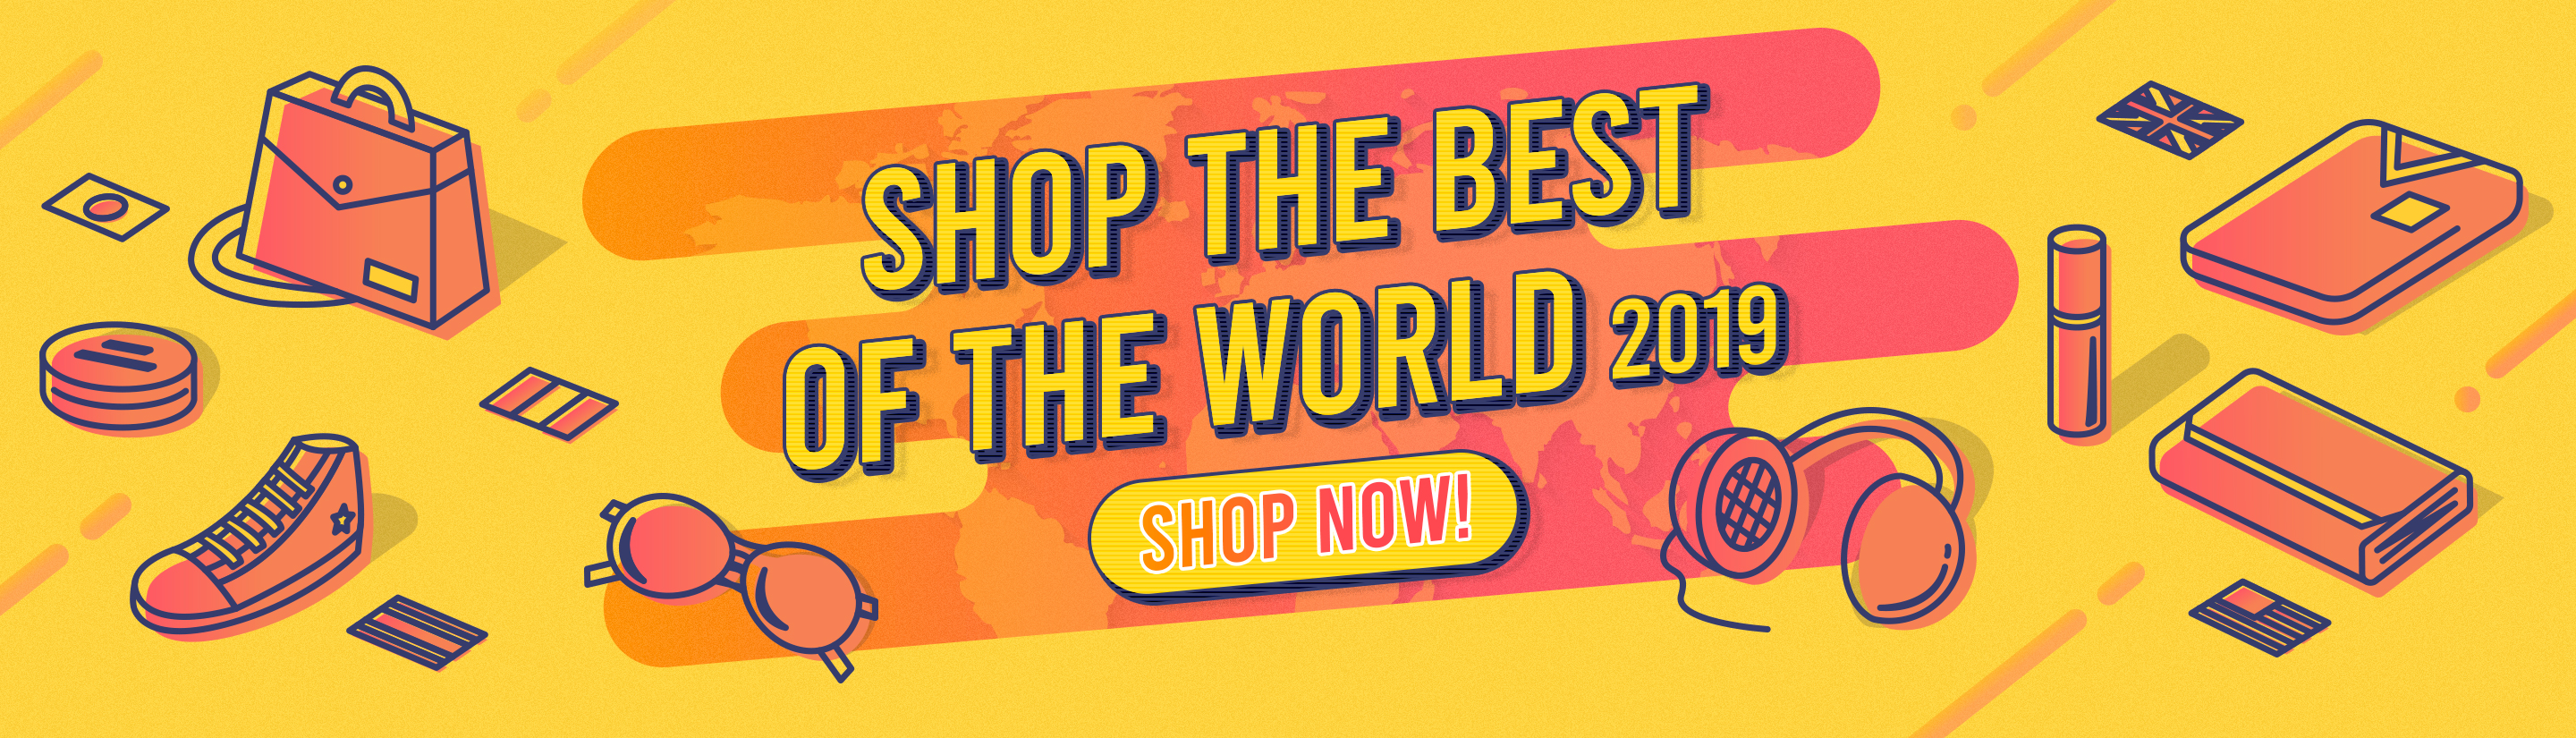 Shop the Best of the World